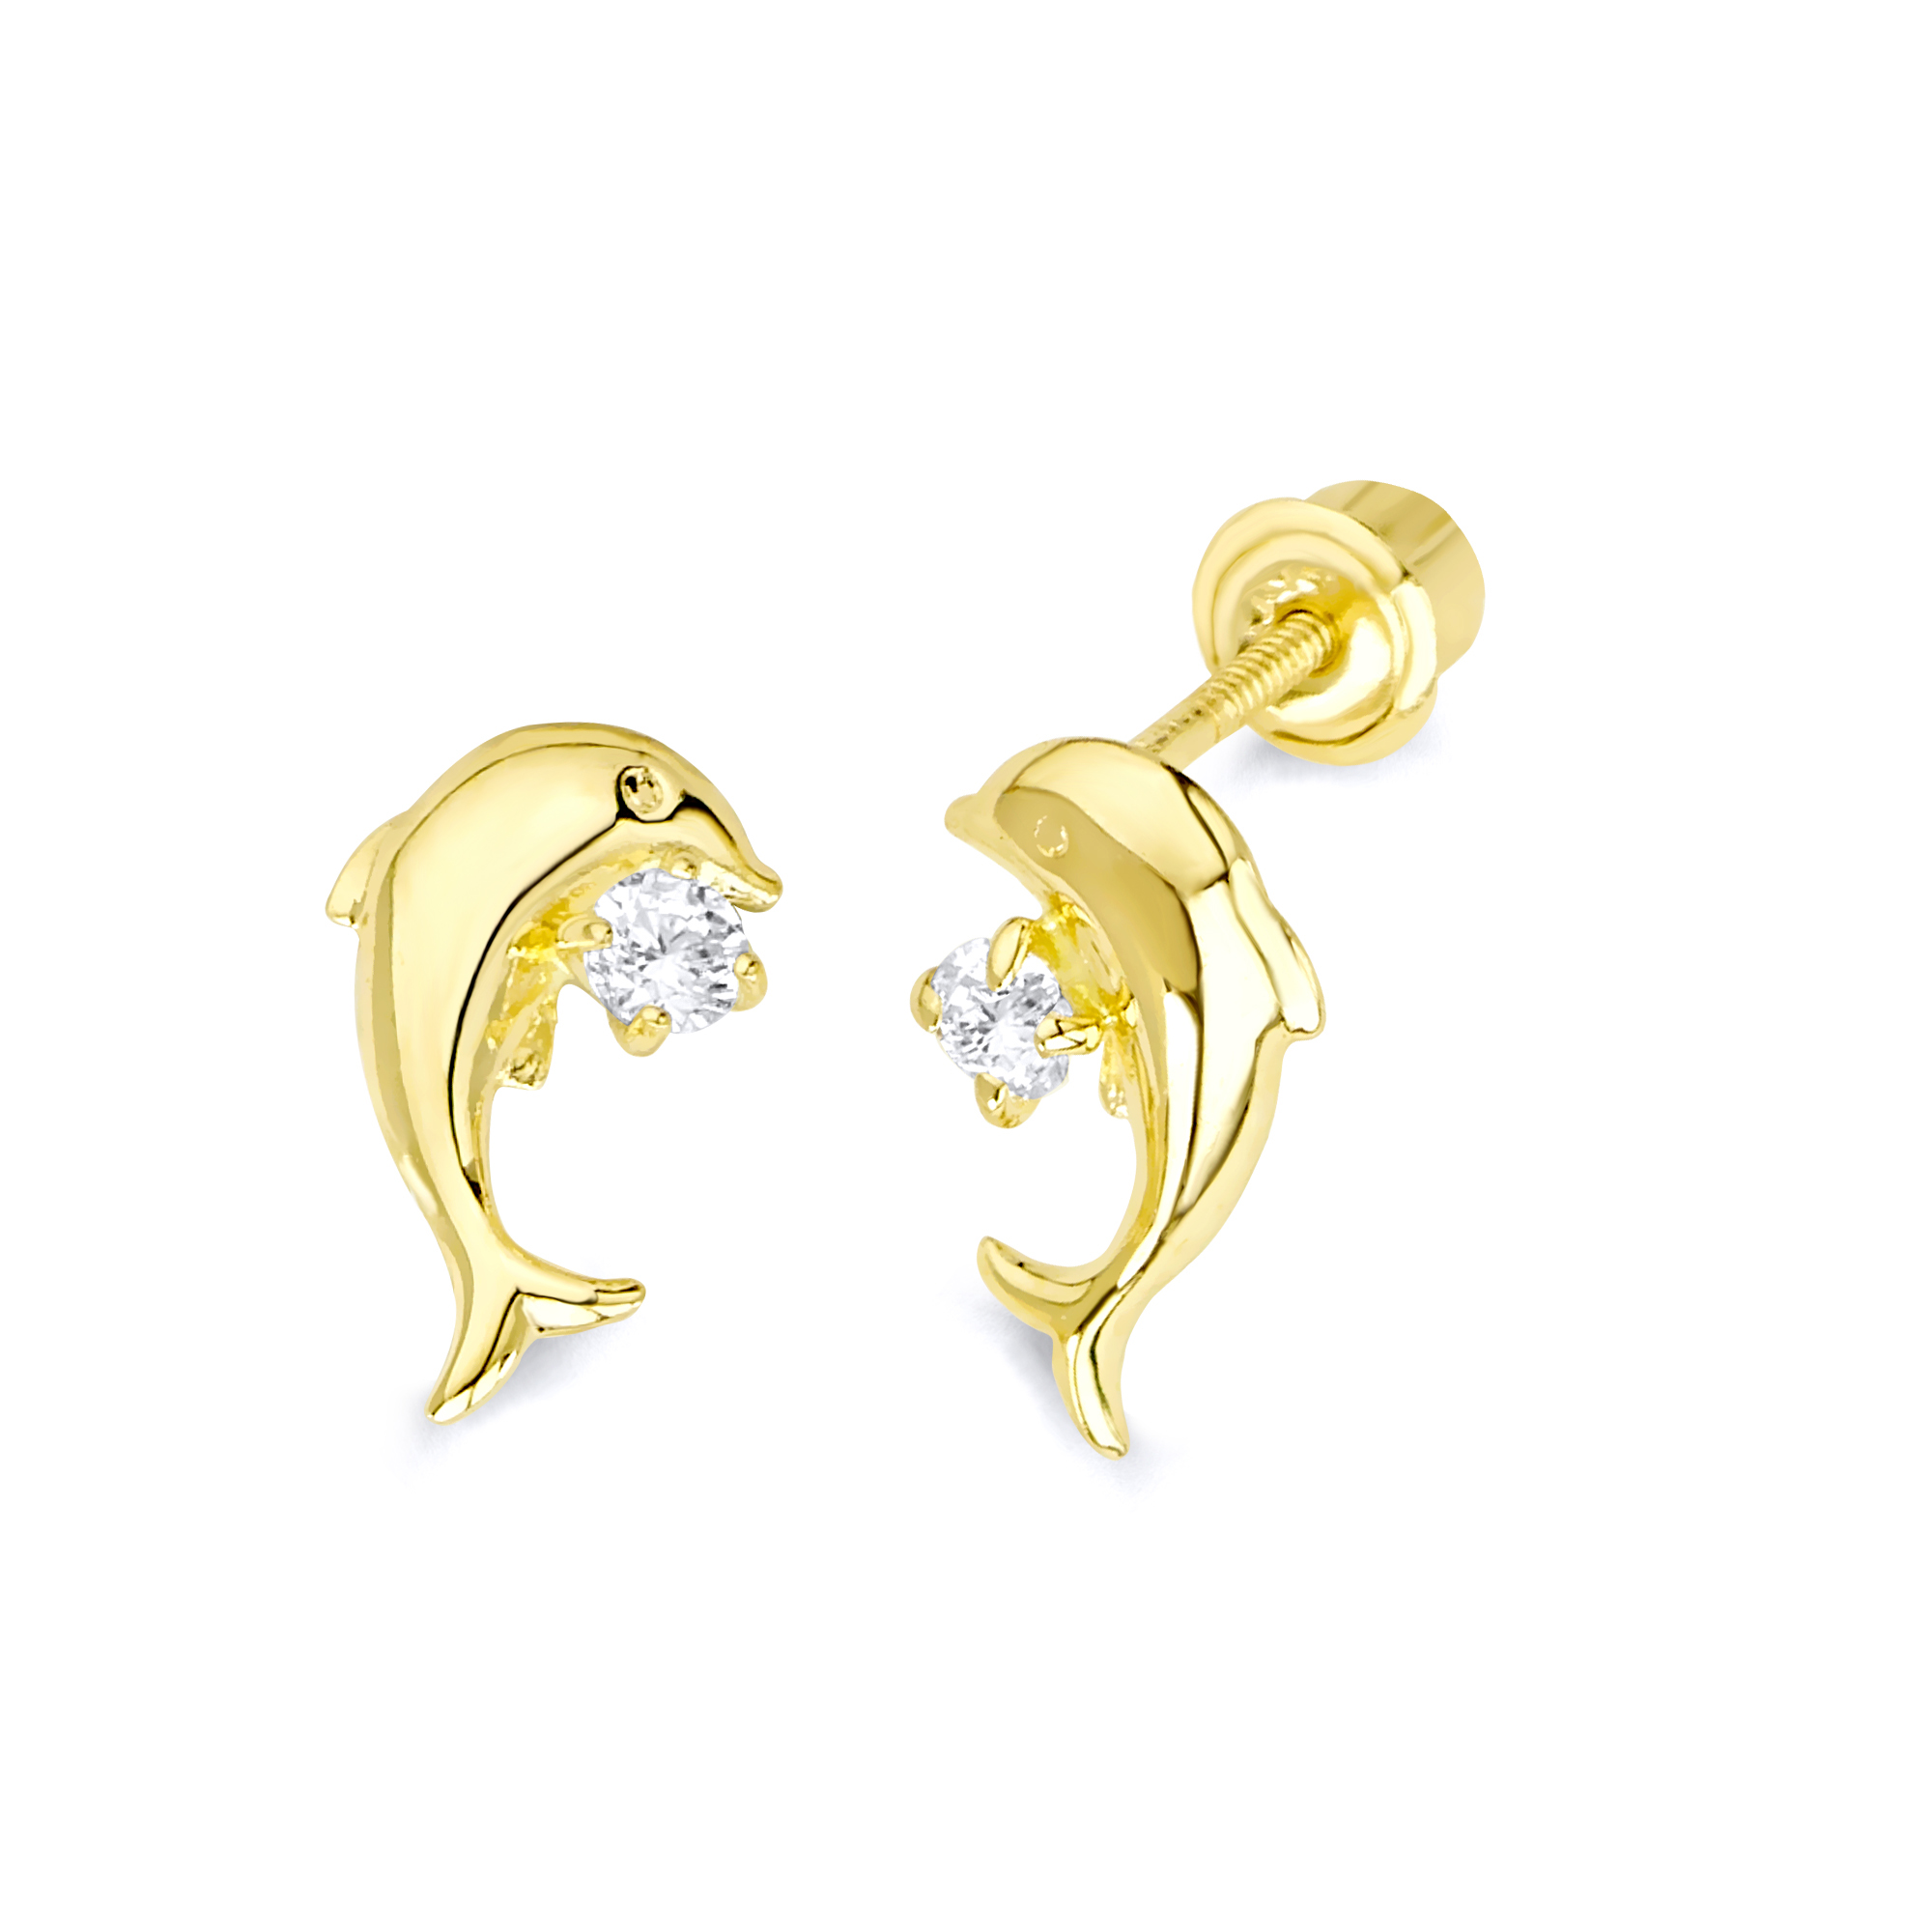 Wellingsale 14K Yellow Gold Polished Dolphin Stud Earrings With Screw Back